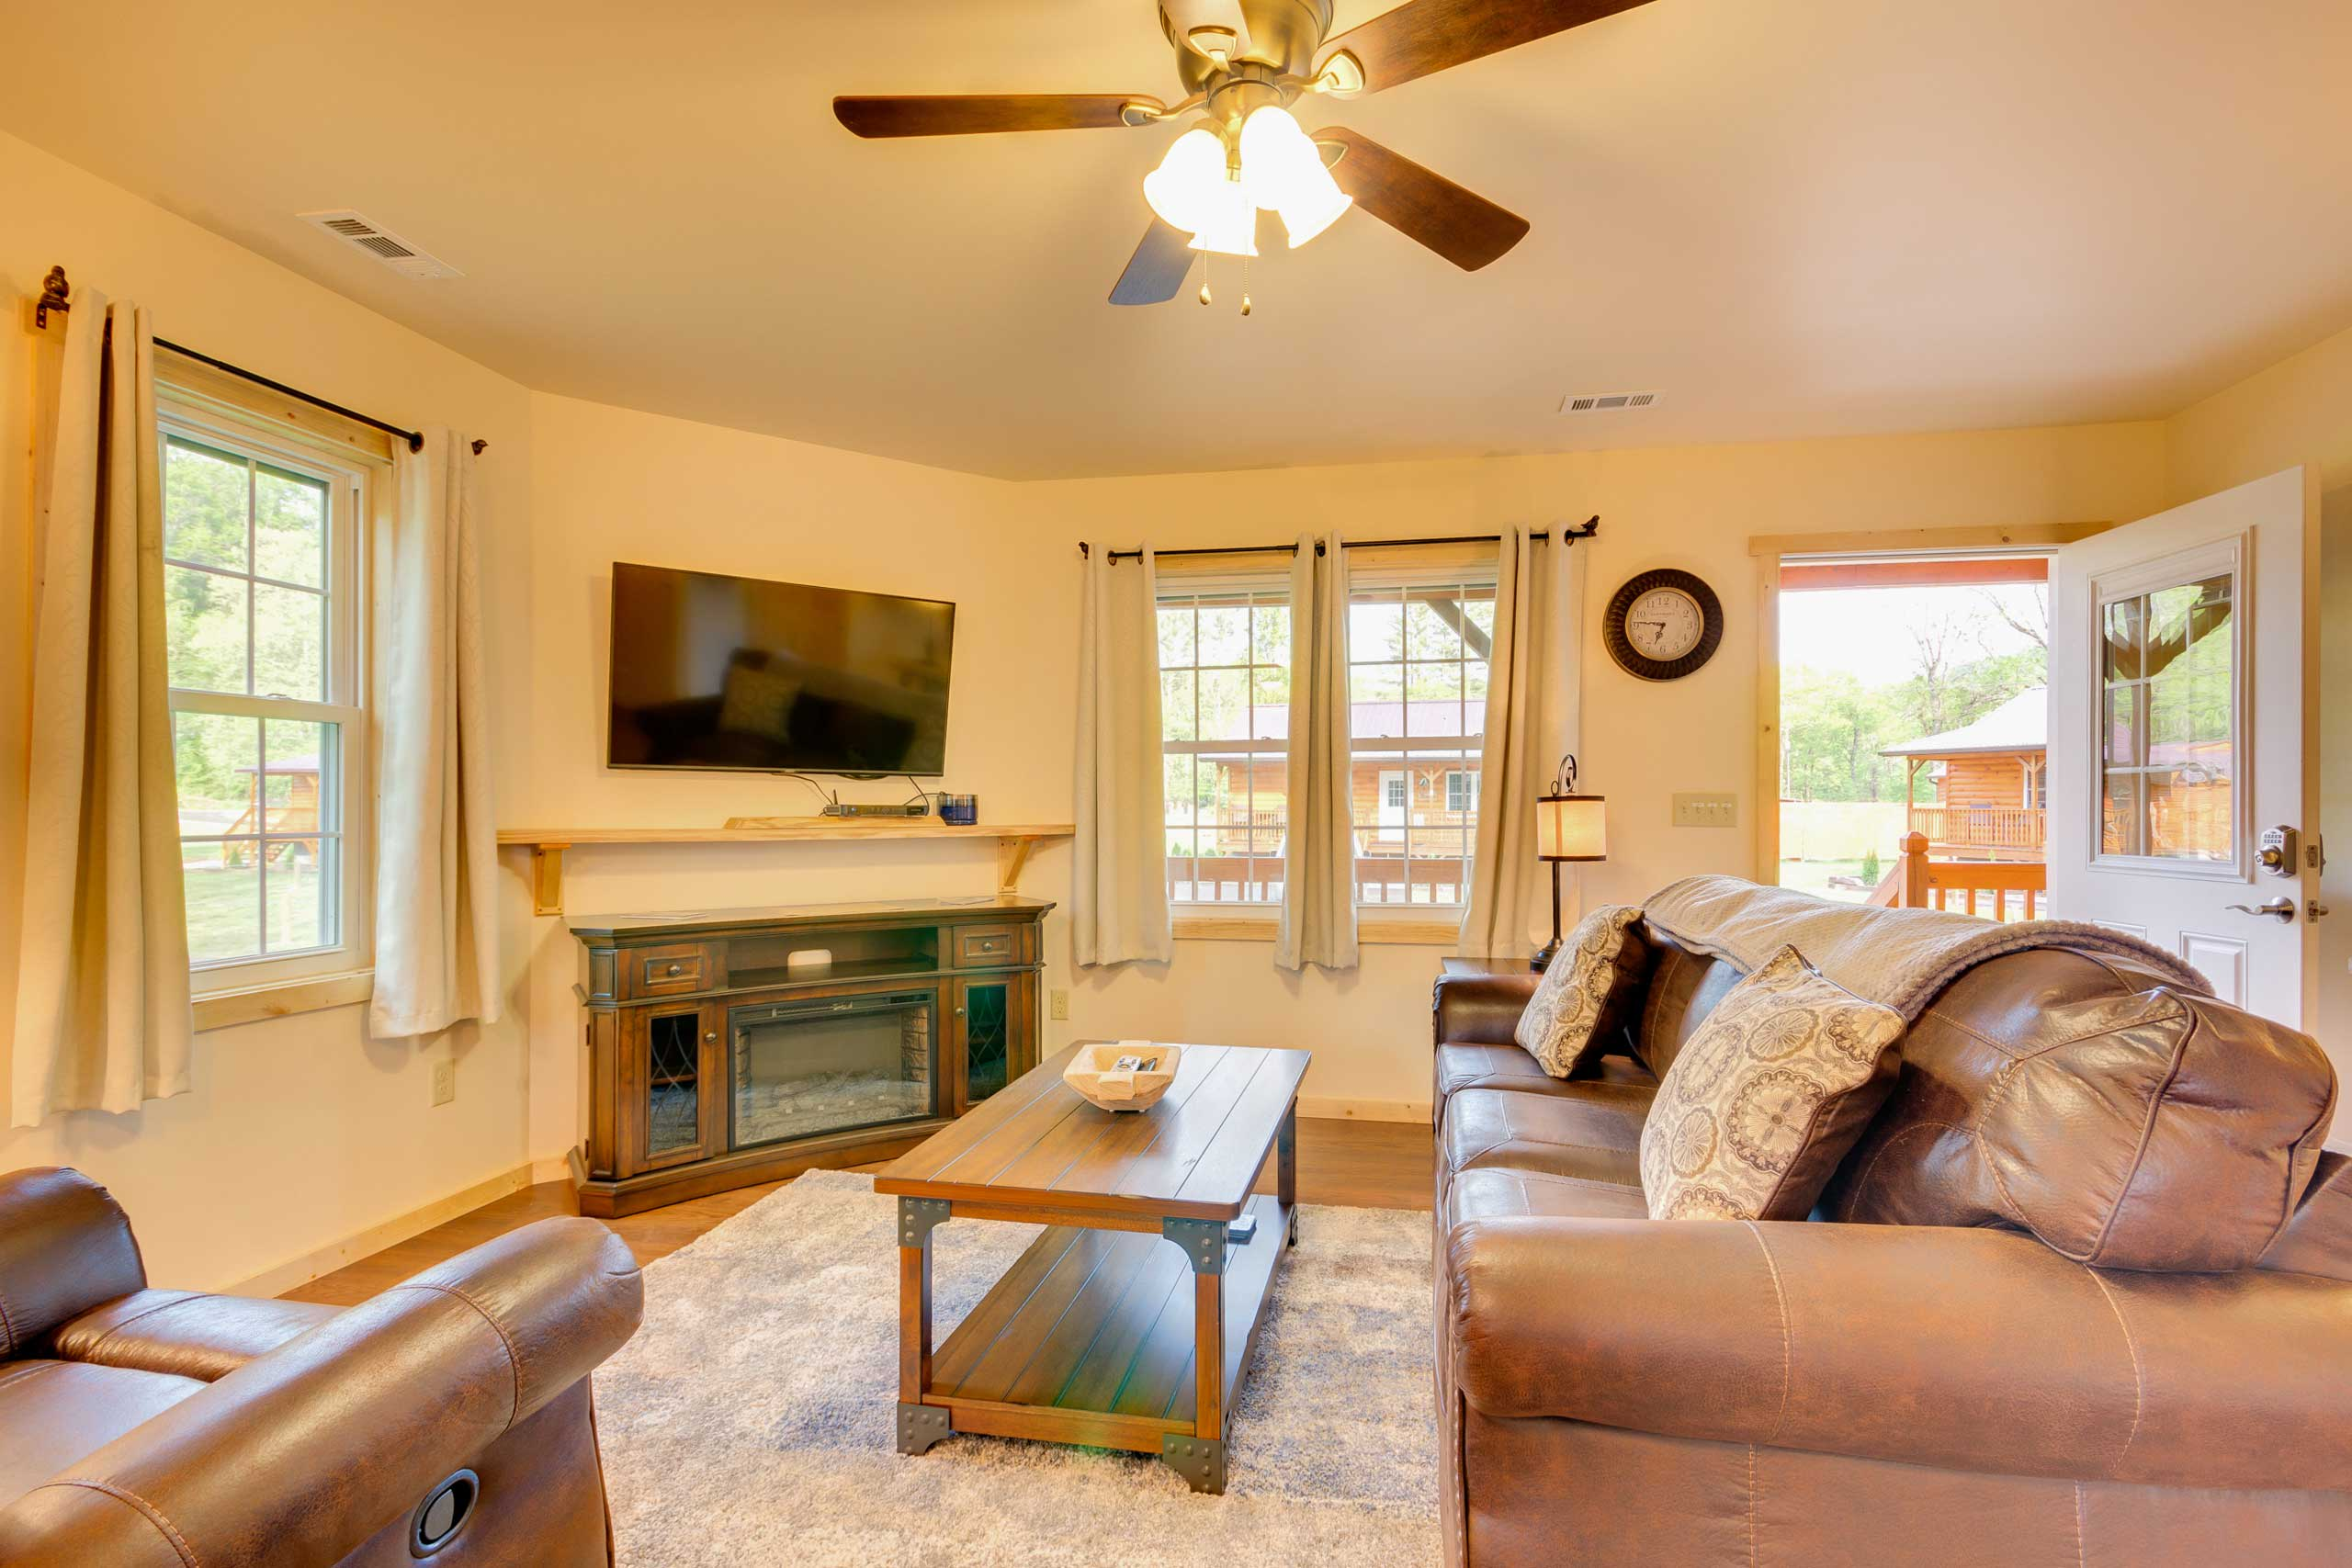 The open living space features wooden accents.